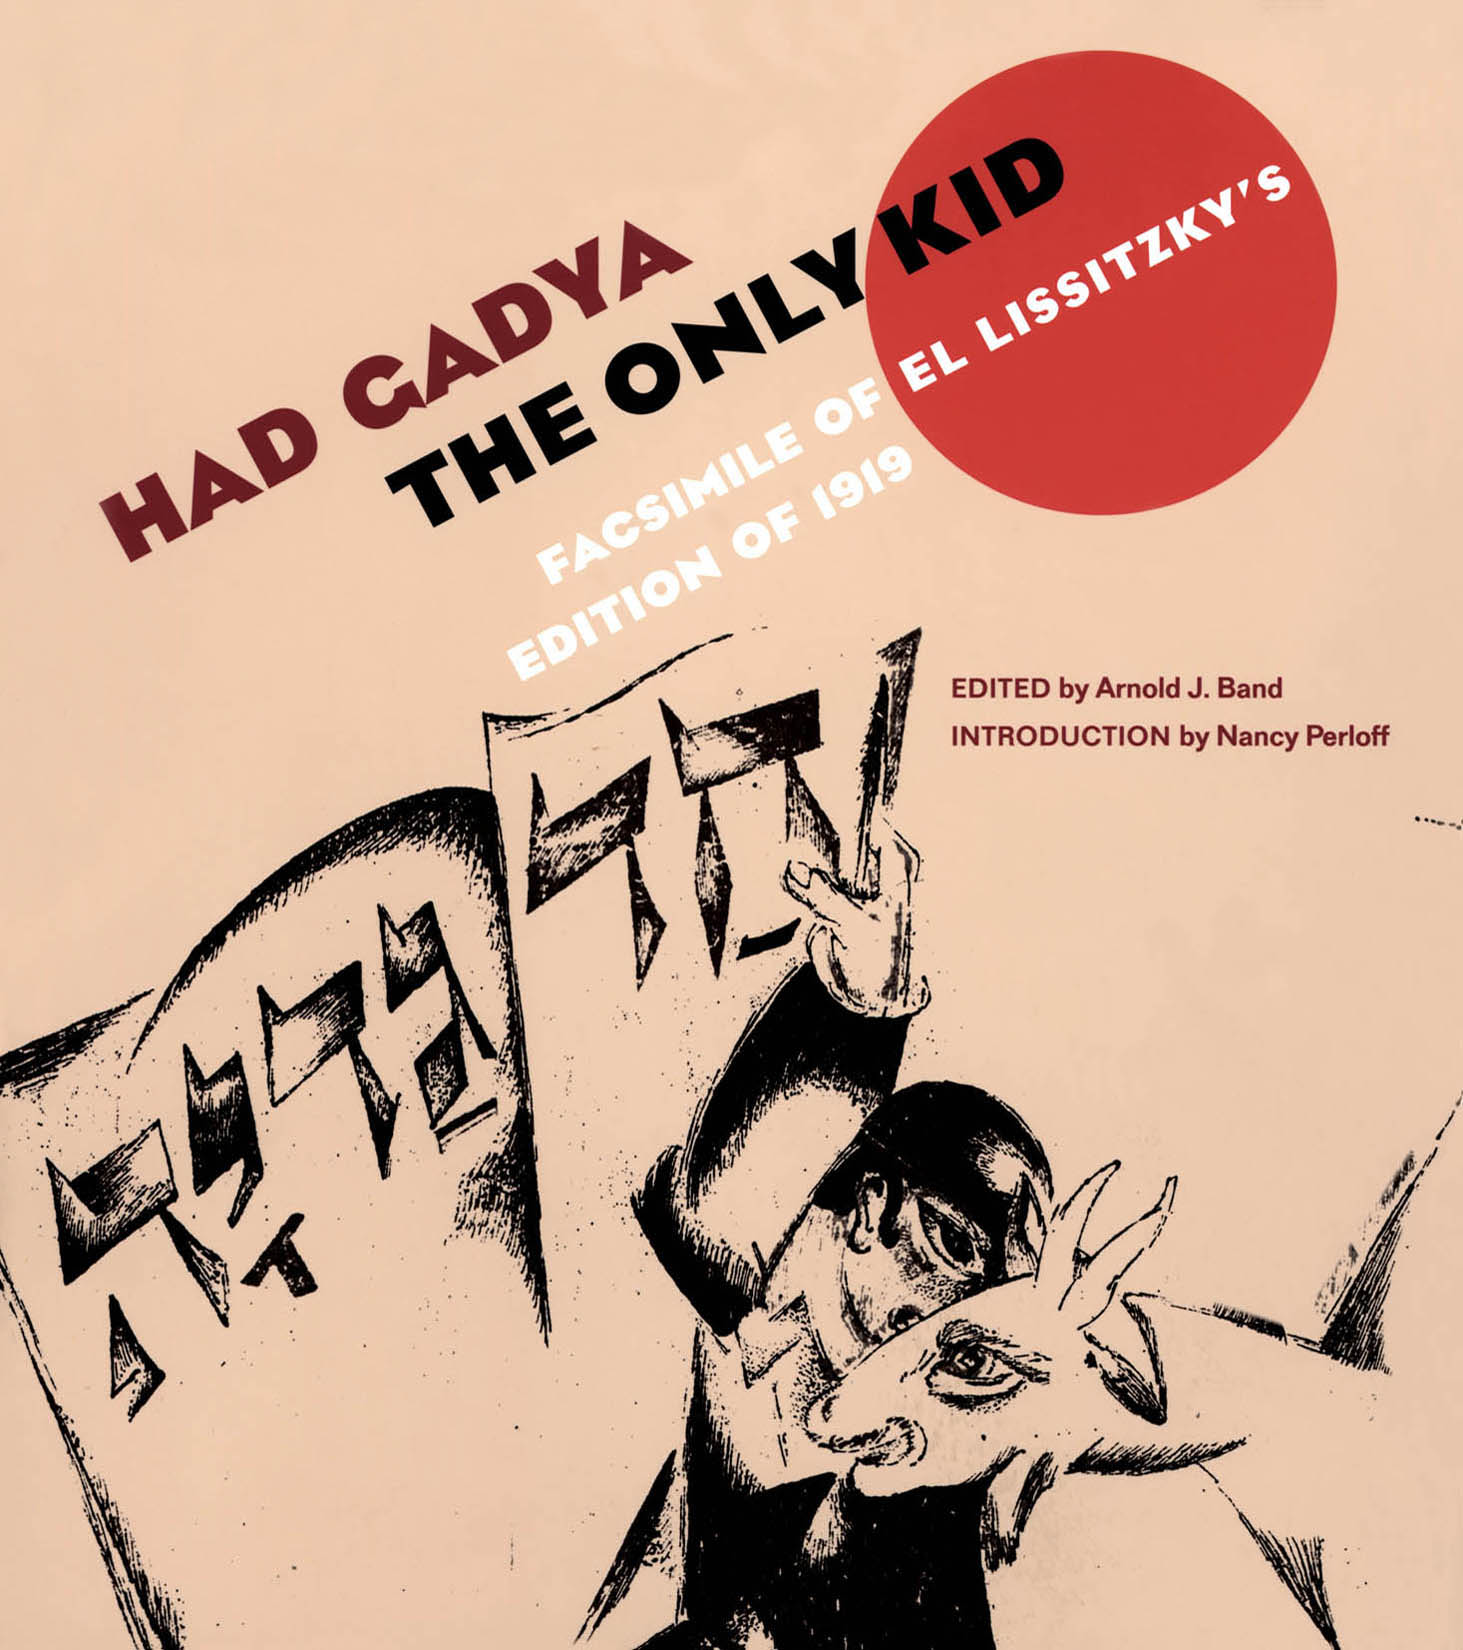 Had Gadya: The Only Kid (Facsimile of El Lissitzky's Edition of 1919) Edited by Arnold J. Band 2004